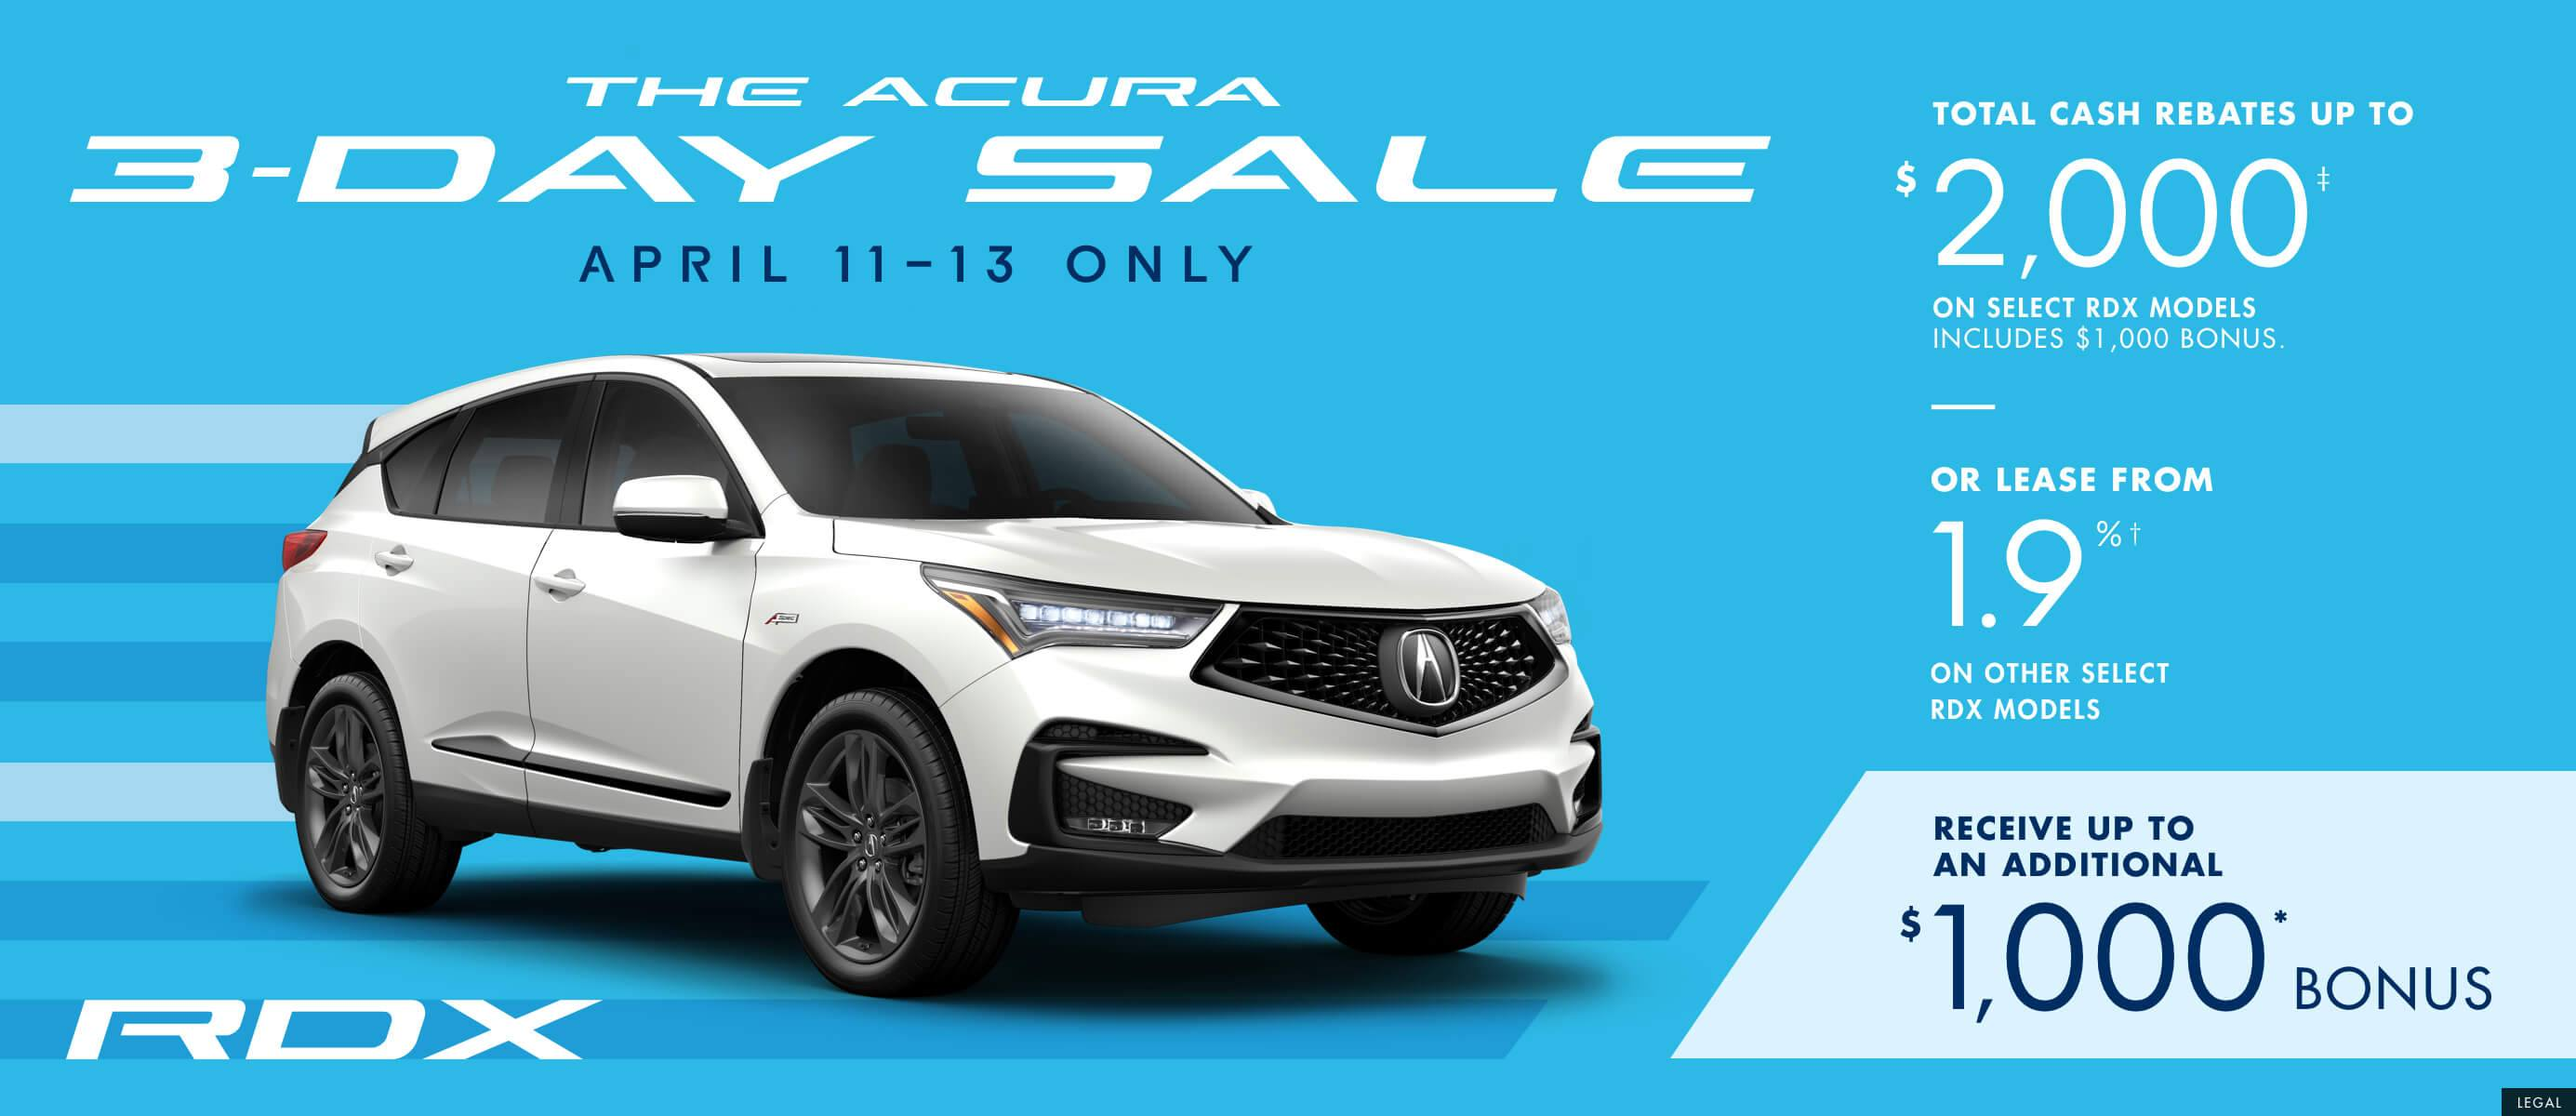 2019 Acura RDX | The Acura 3 Day Sale